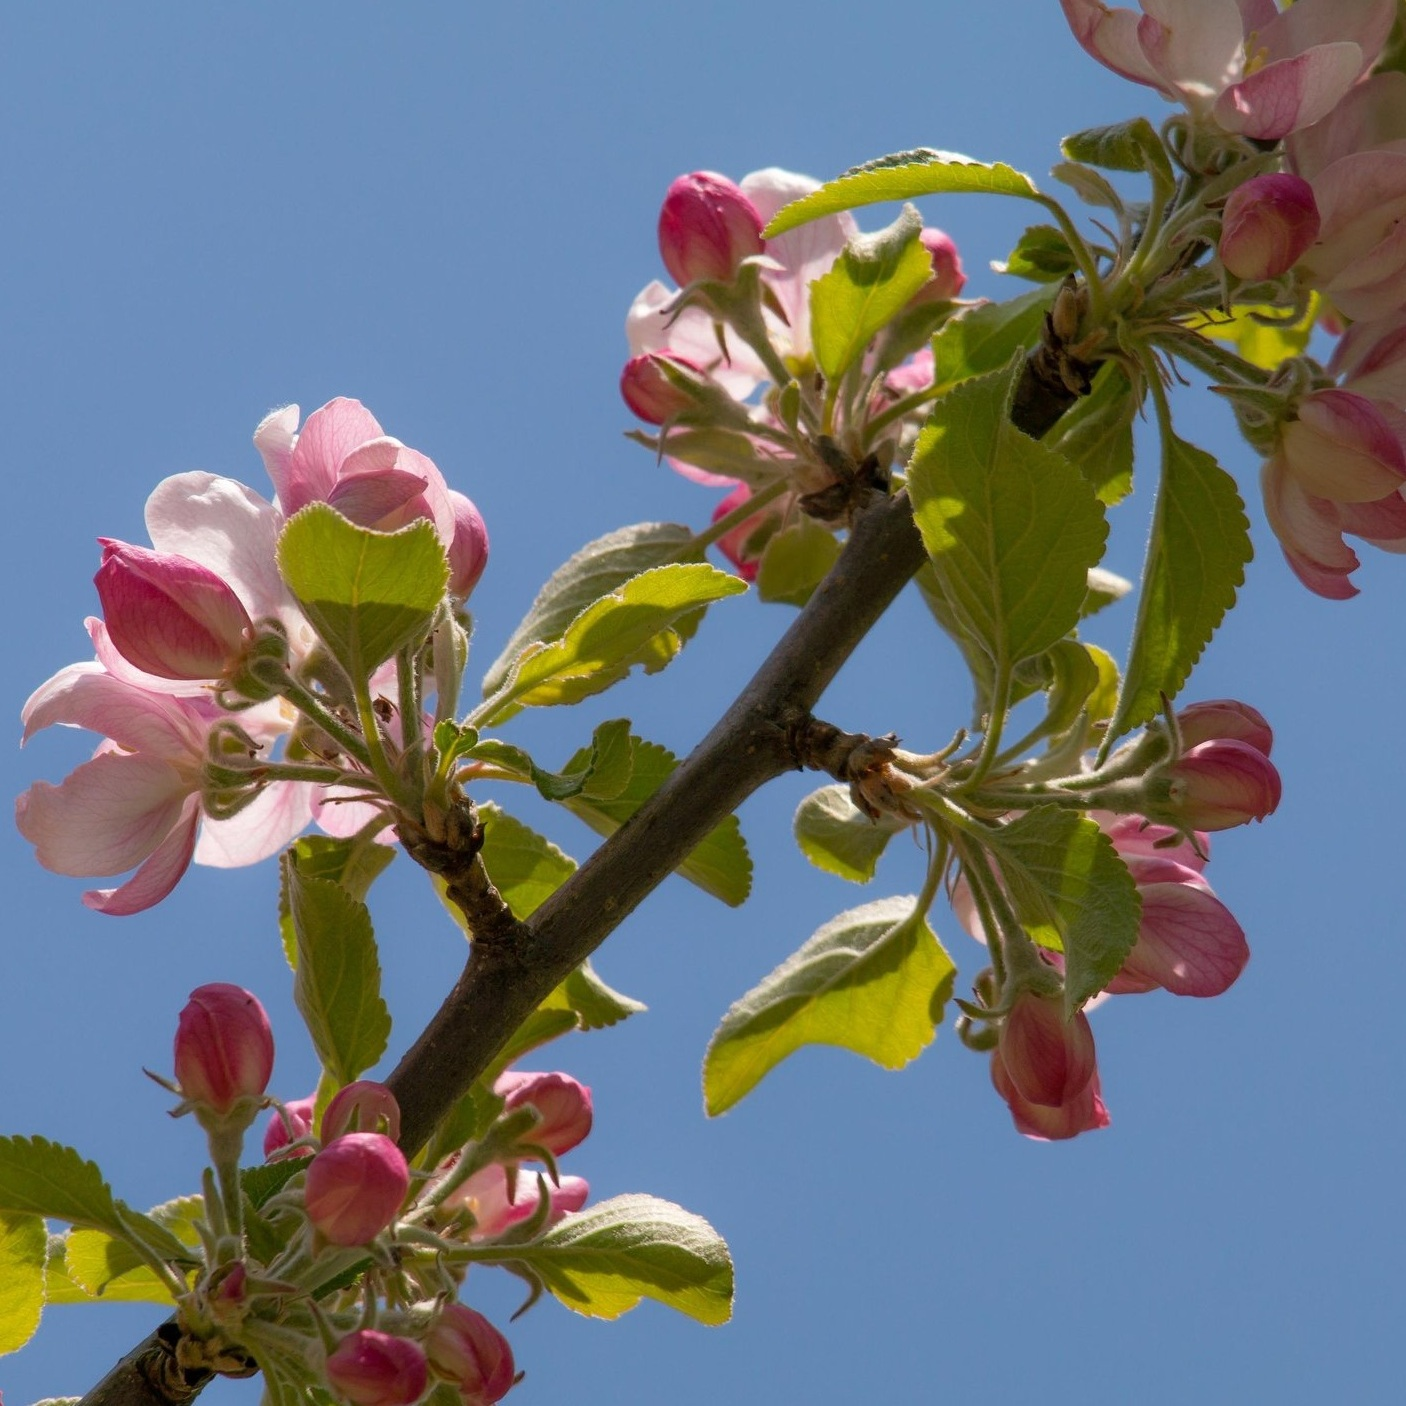 apple-blossom-736478.jpg